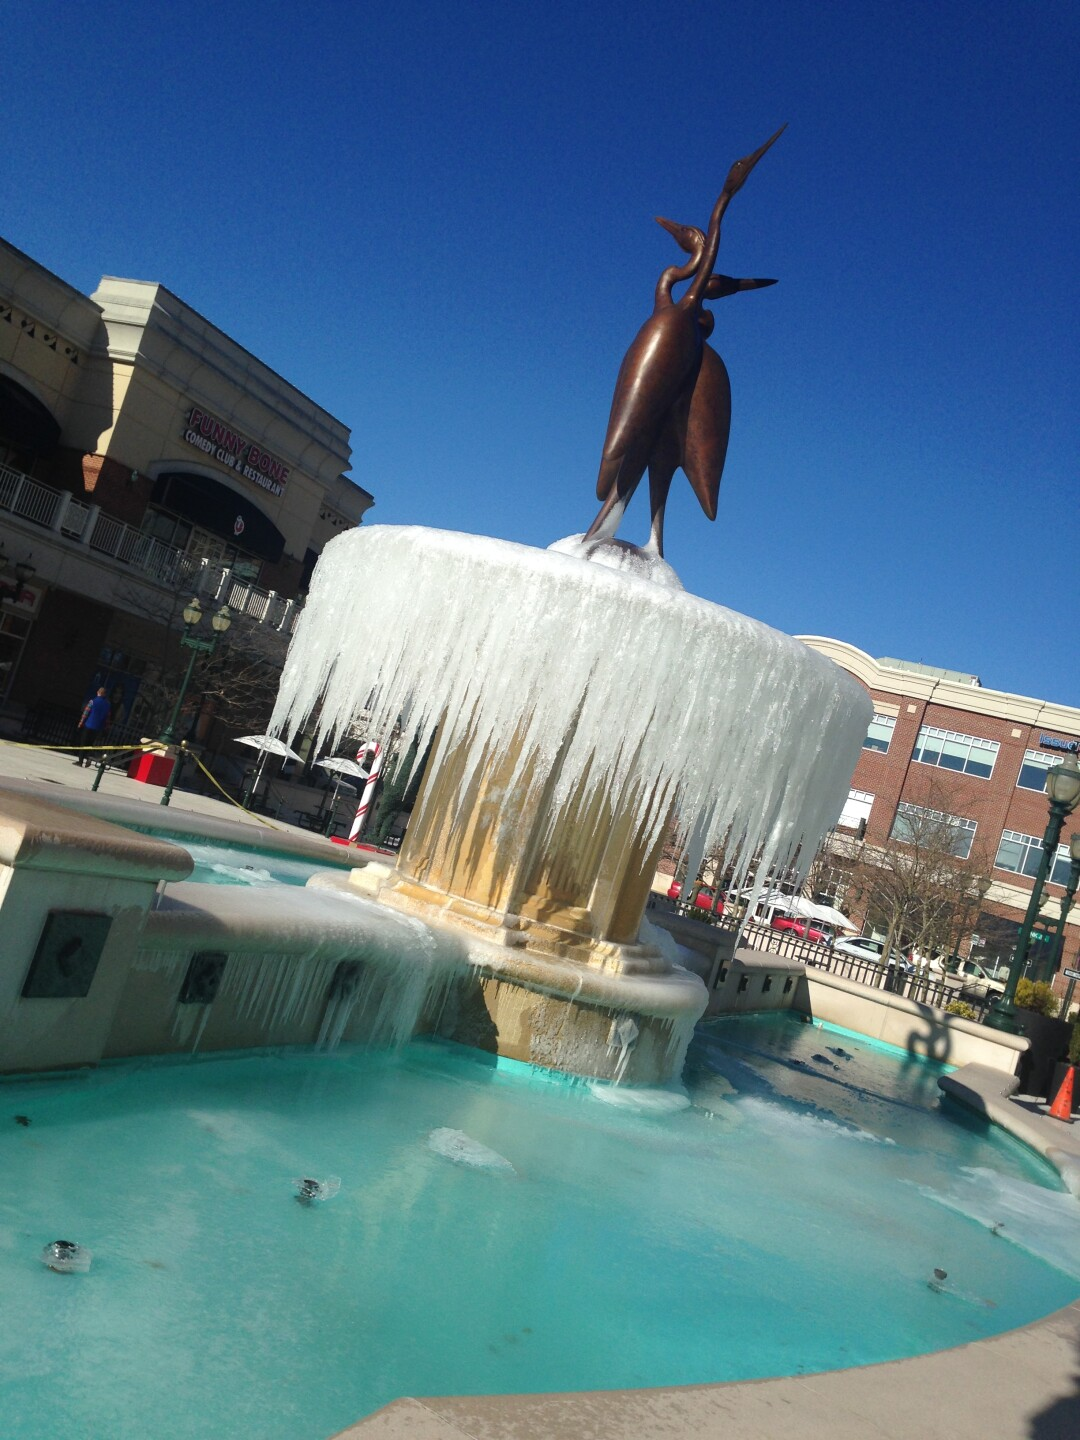 Photos: BRRR! It's freezing outside… Literally!